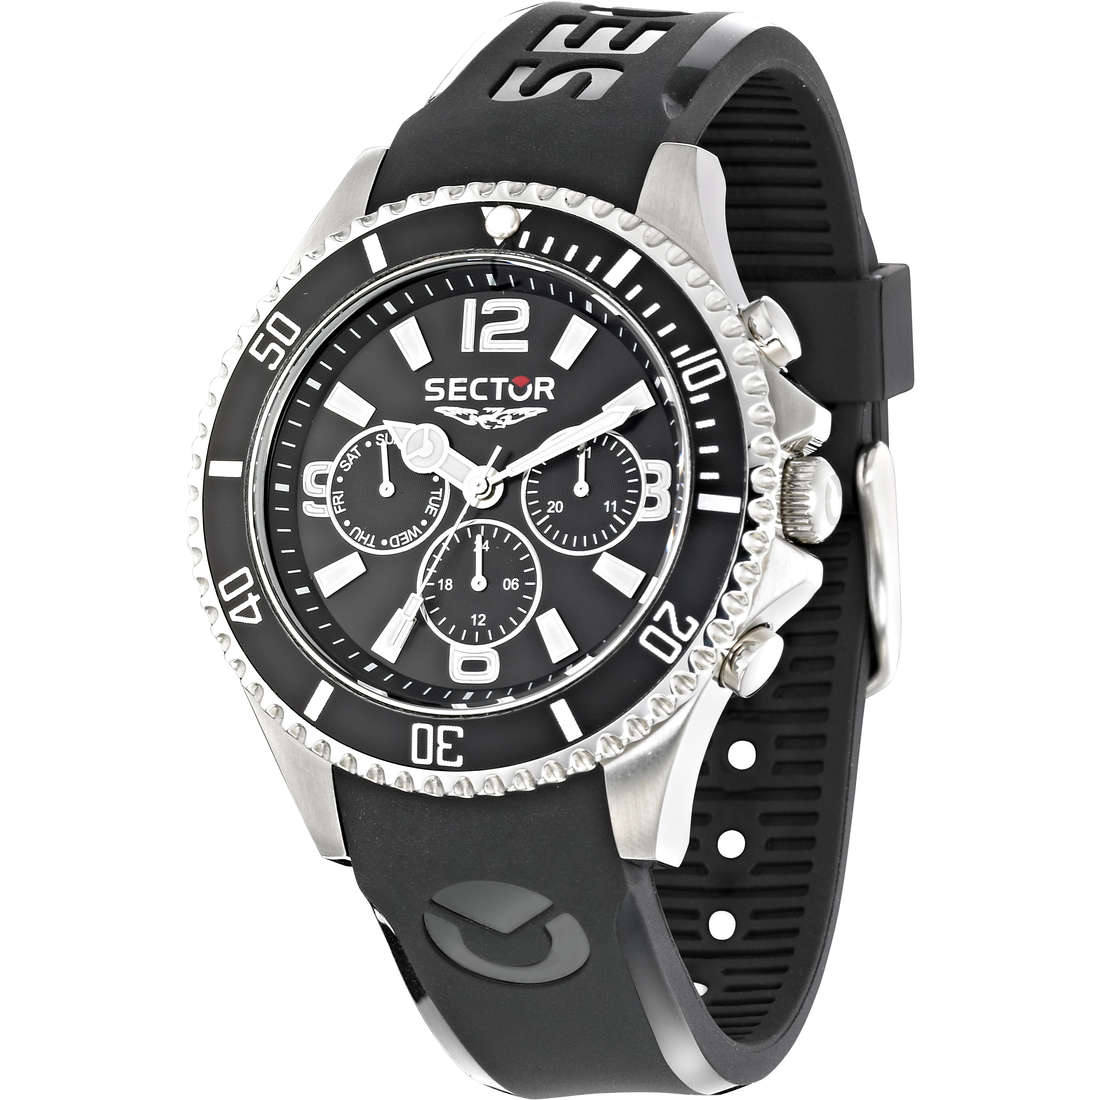 montre chronographe homme Sector Marine230 R3251161002